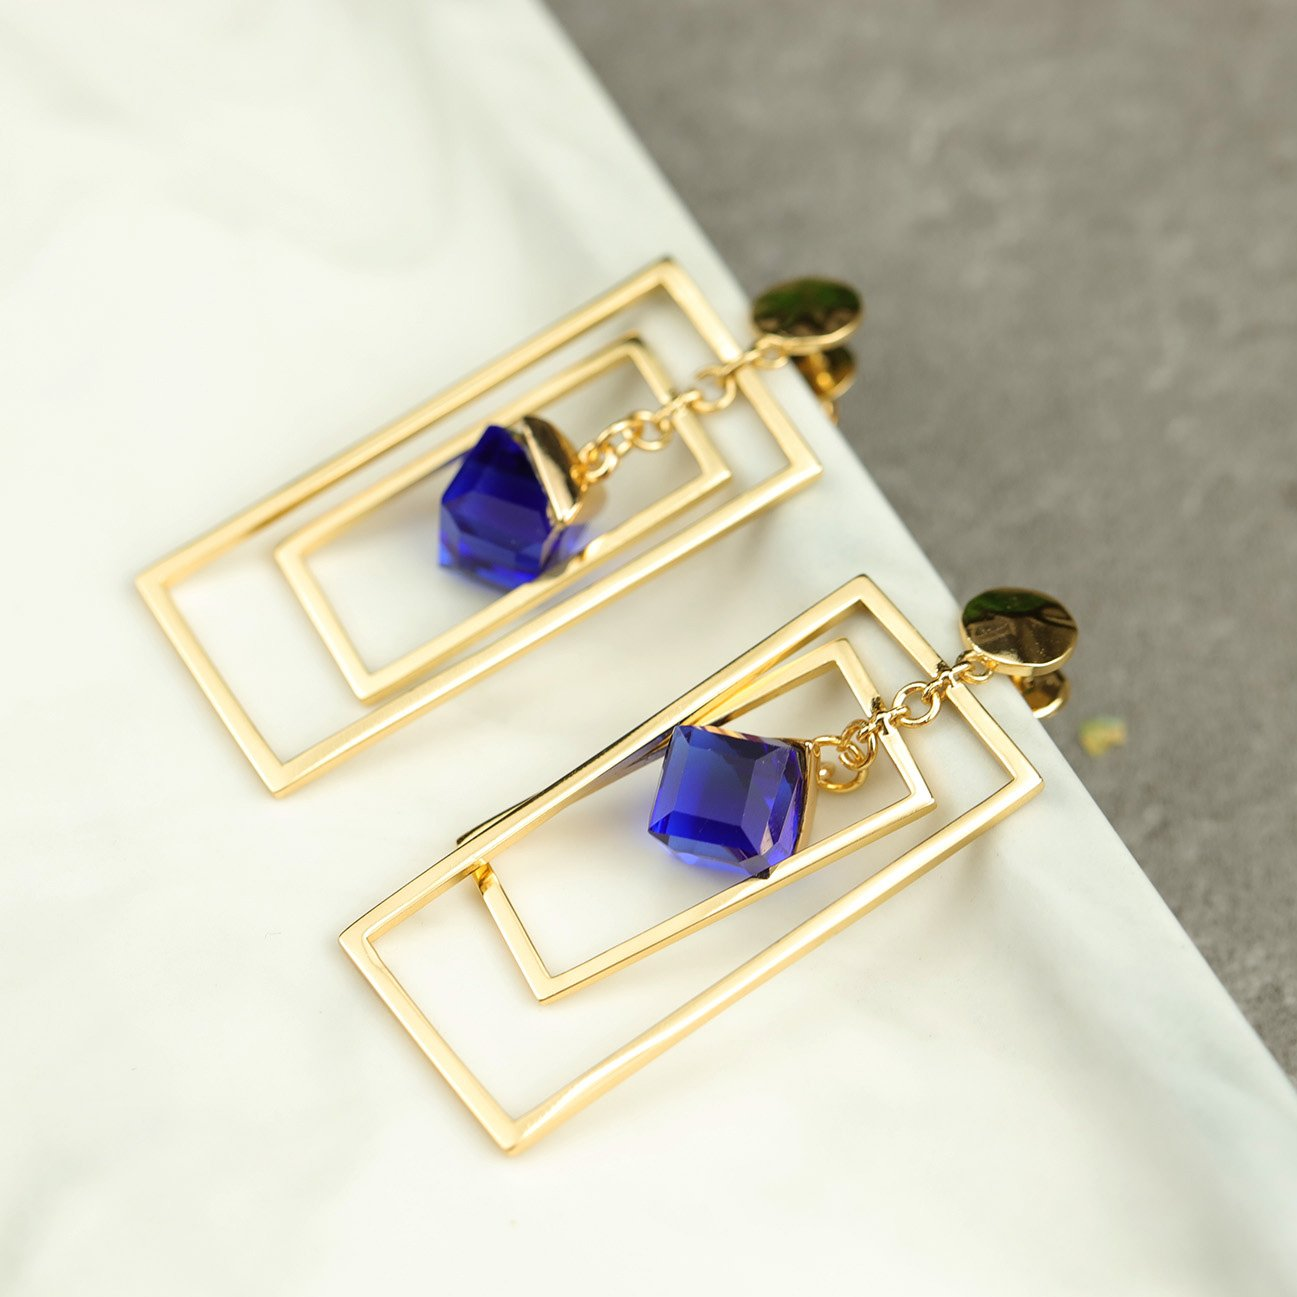 Stylish Geometric Stud Earrings